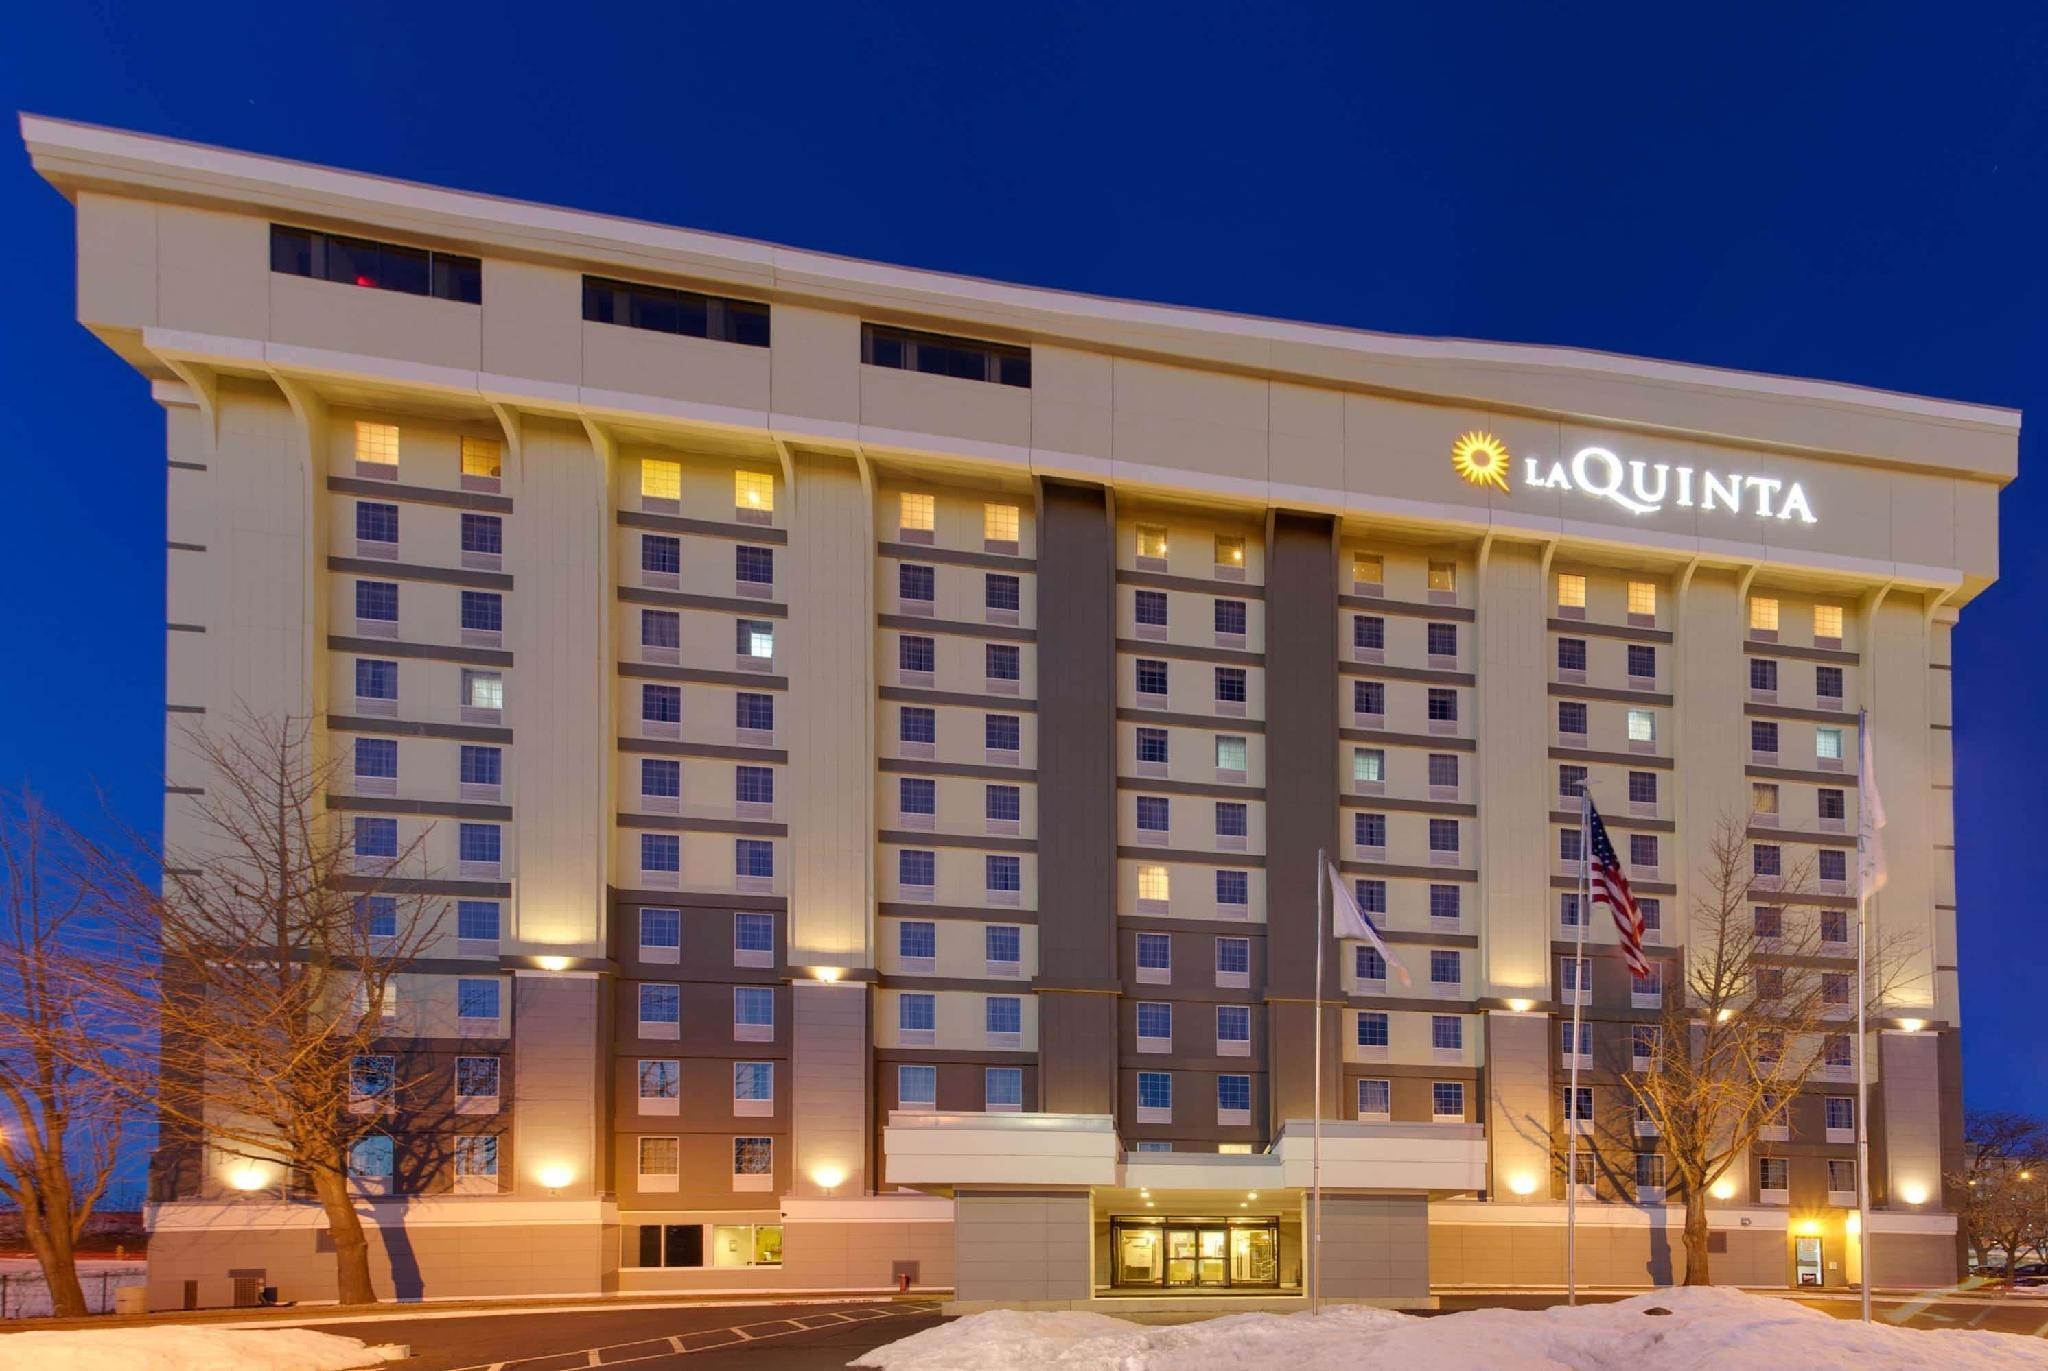 La Quinta Inn And Suites By Wyndham Springfield MA